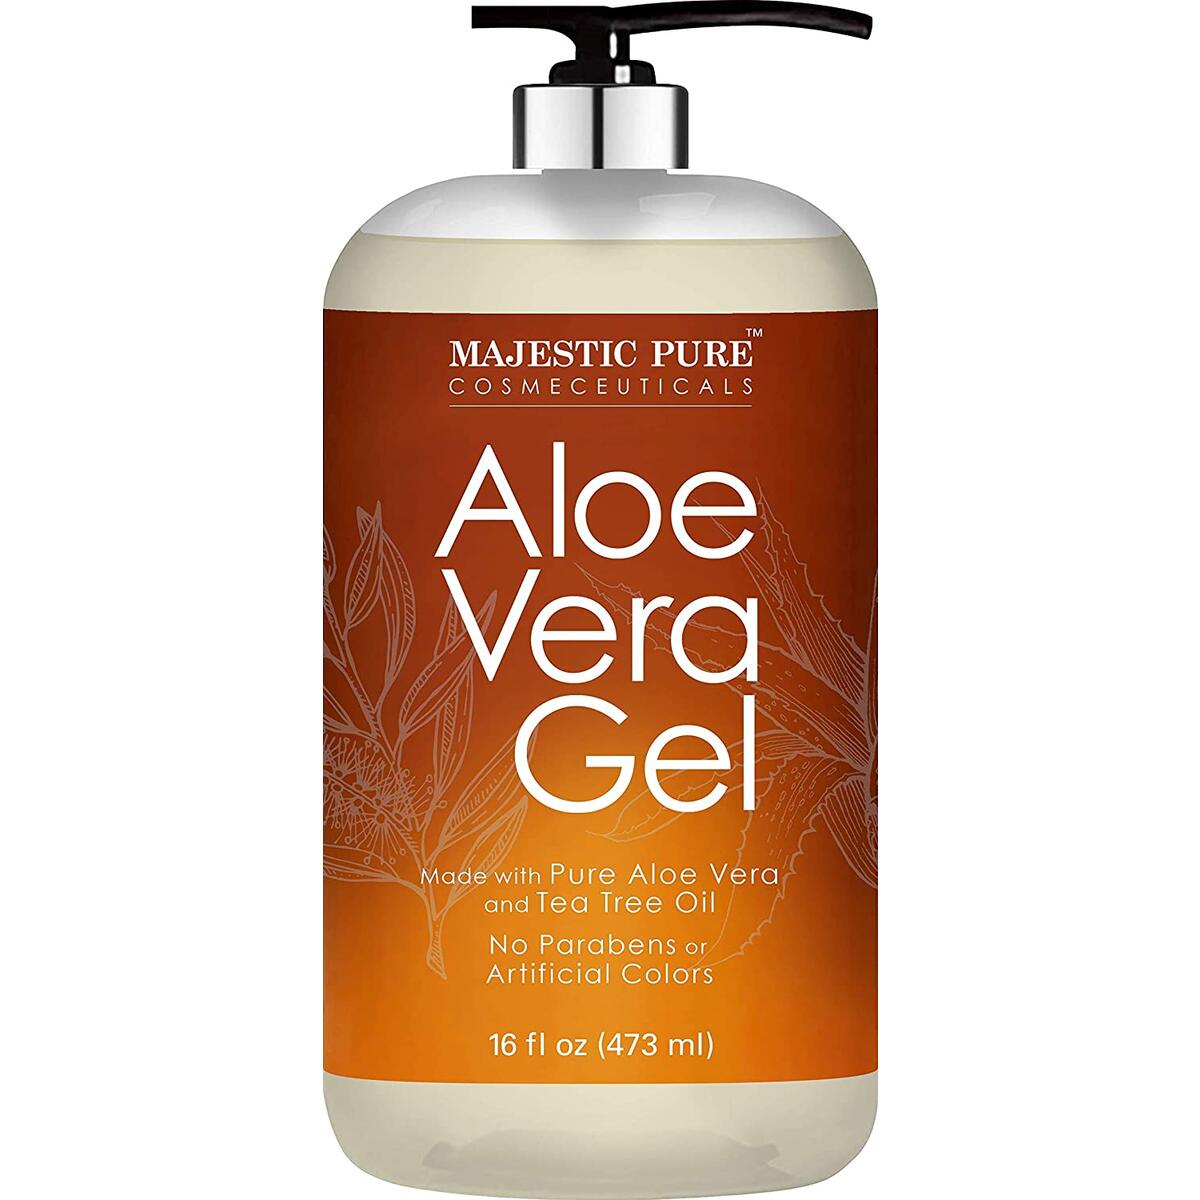 Aloe Vera Gel with Tea Tree Essential Oil - Moisturizes, and Nourishes Skin - Soothes Sunburn, Bites, Rashes, Small Cuts & Eczema - (Packaging May Vary) - 16 fl oz